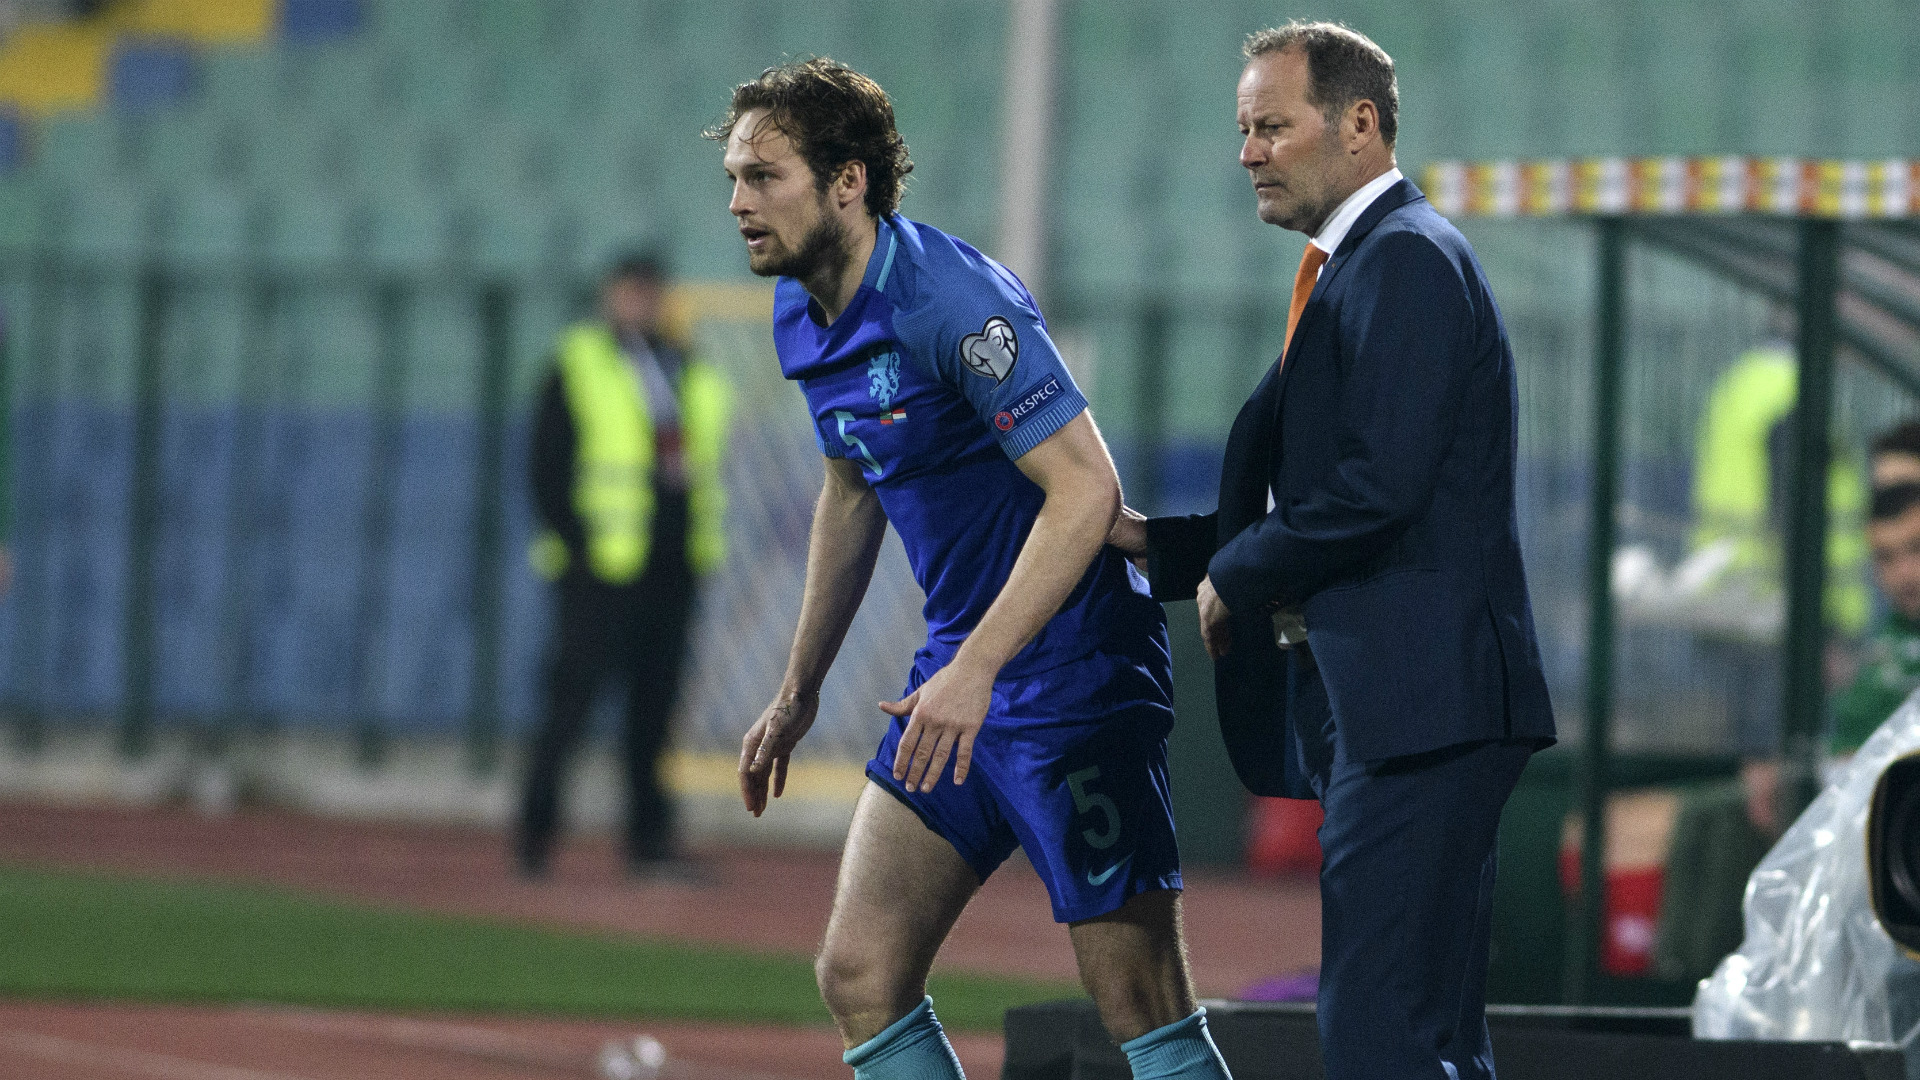 Dutch coach summoned after Bulgaria 'debacle'